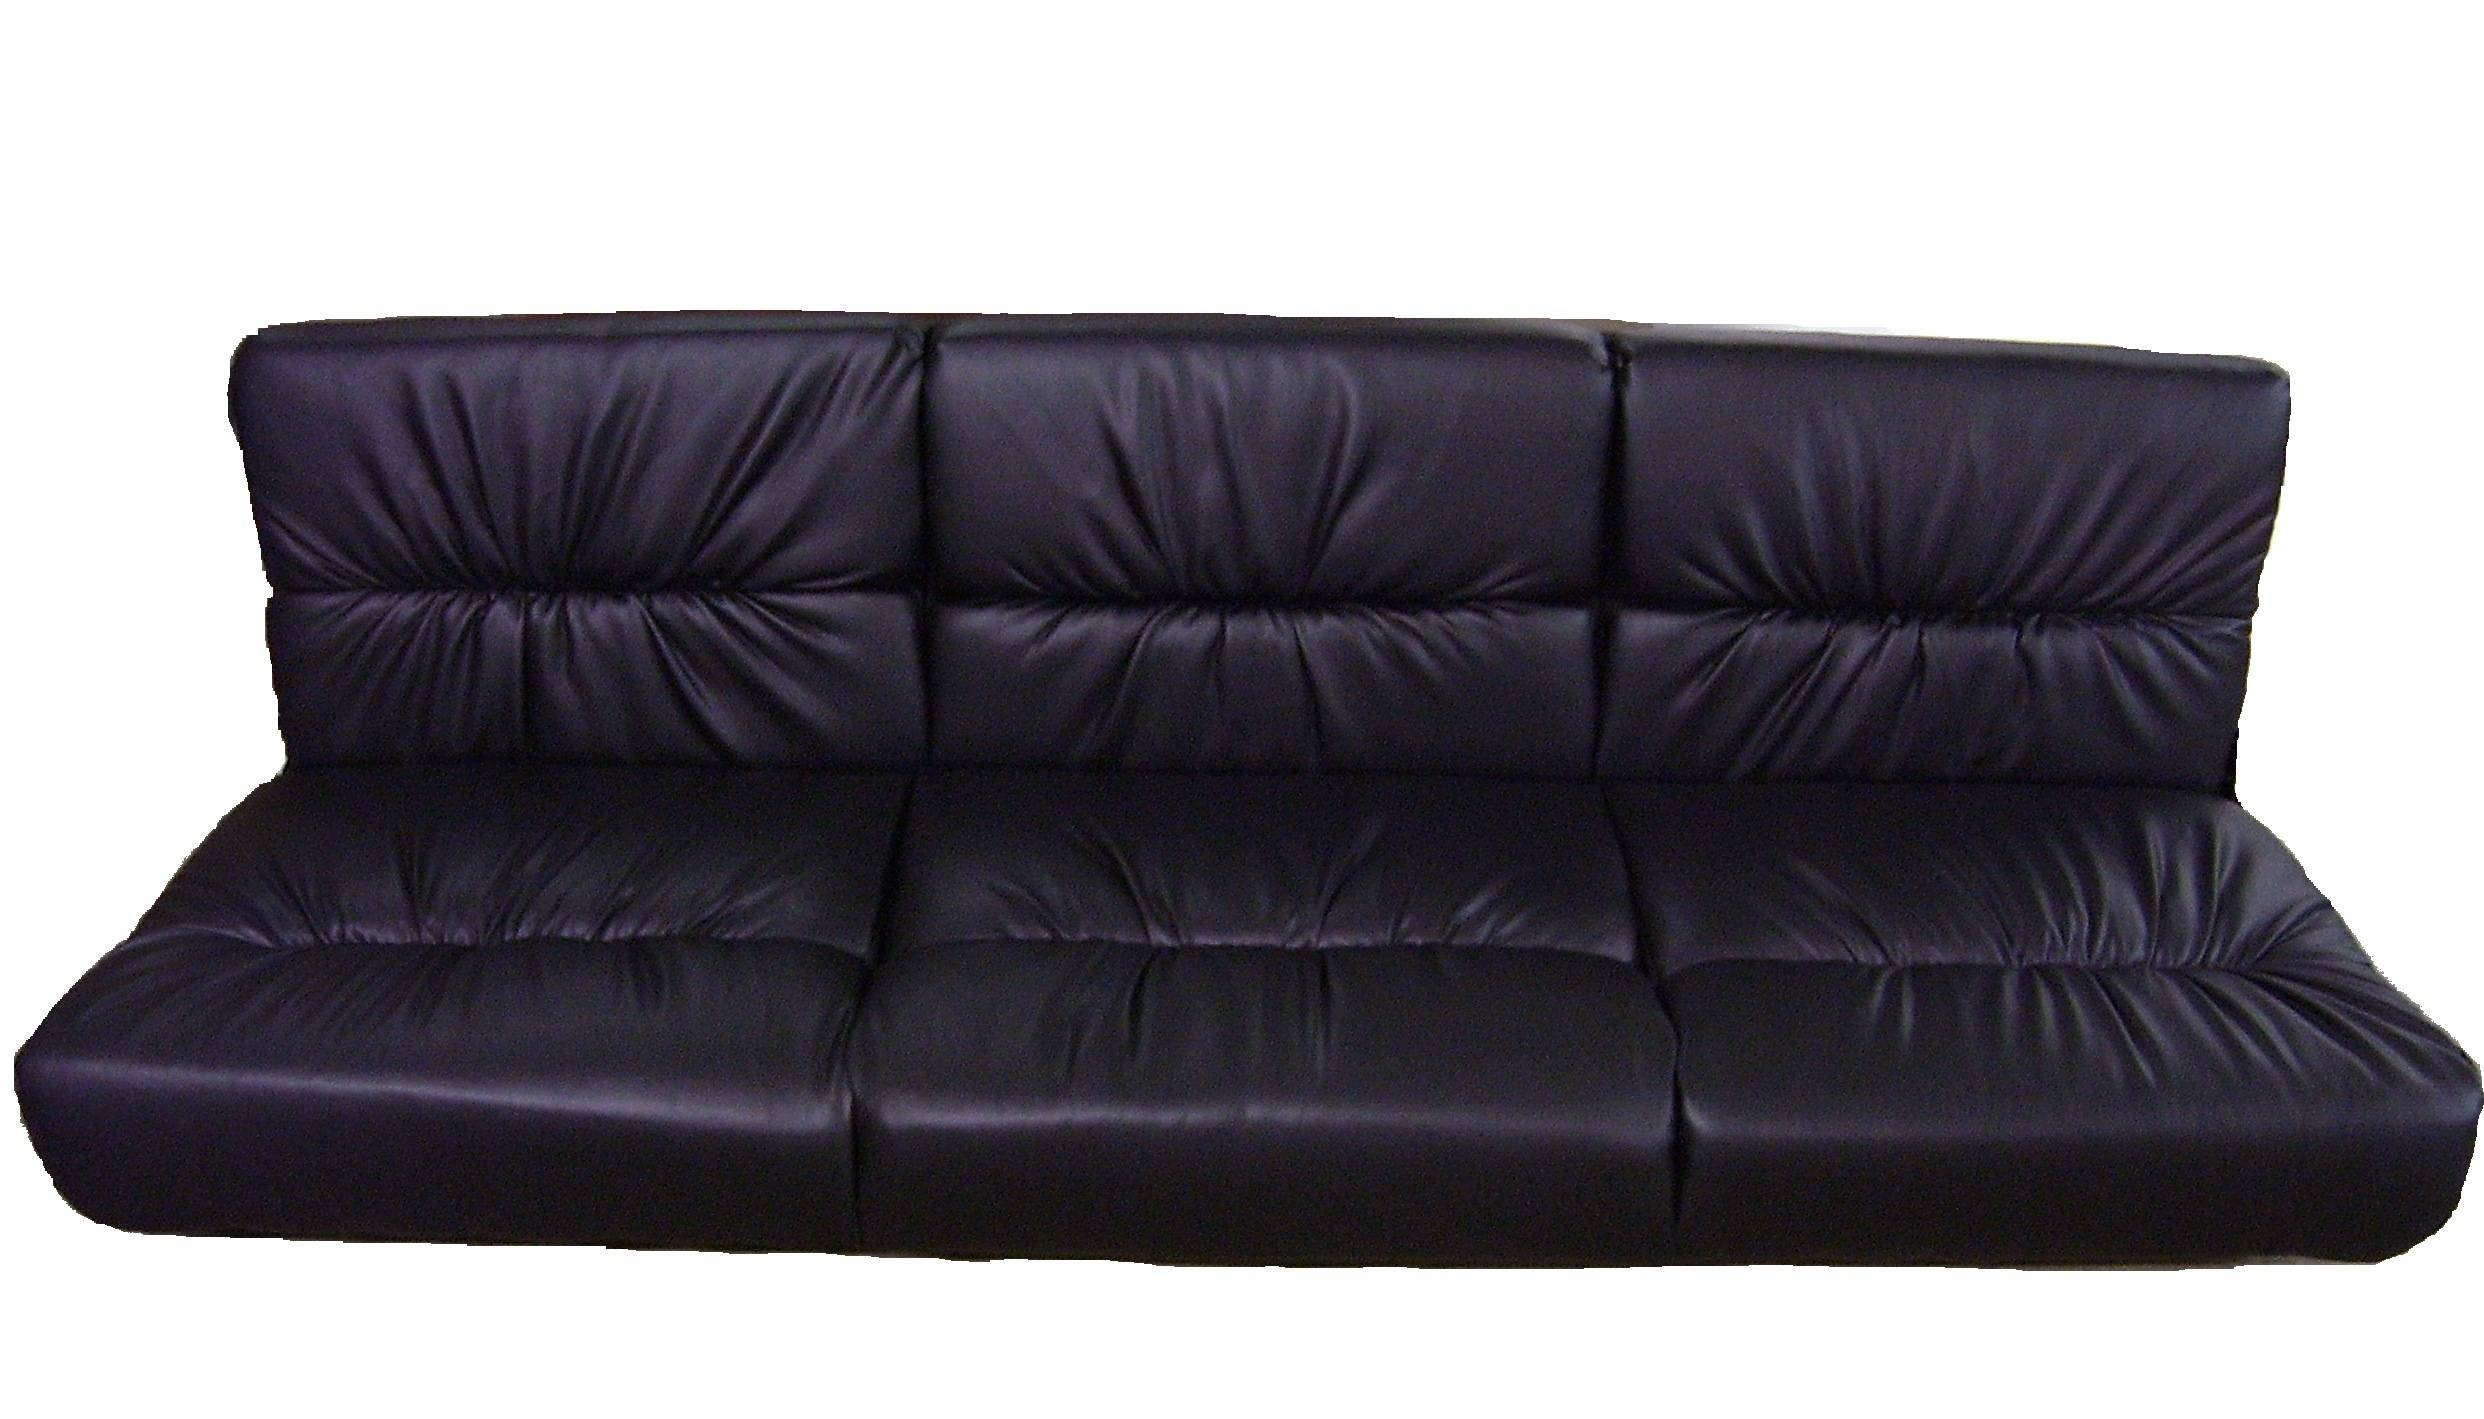 X Style Jk throughout Rv Jackknife Sofas (Image 15 of 15)